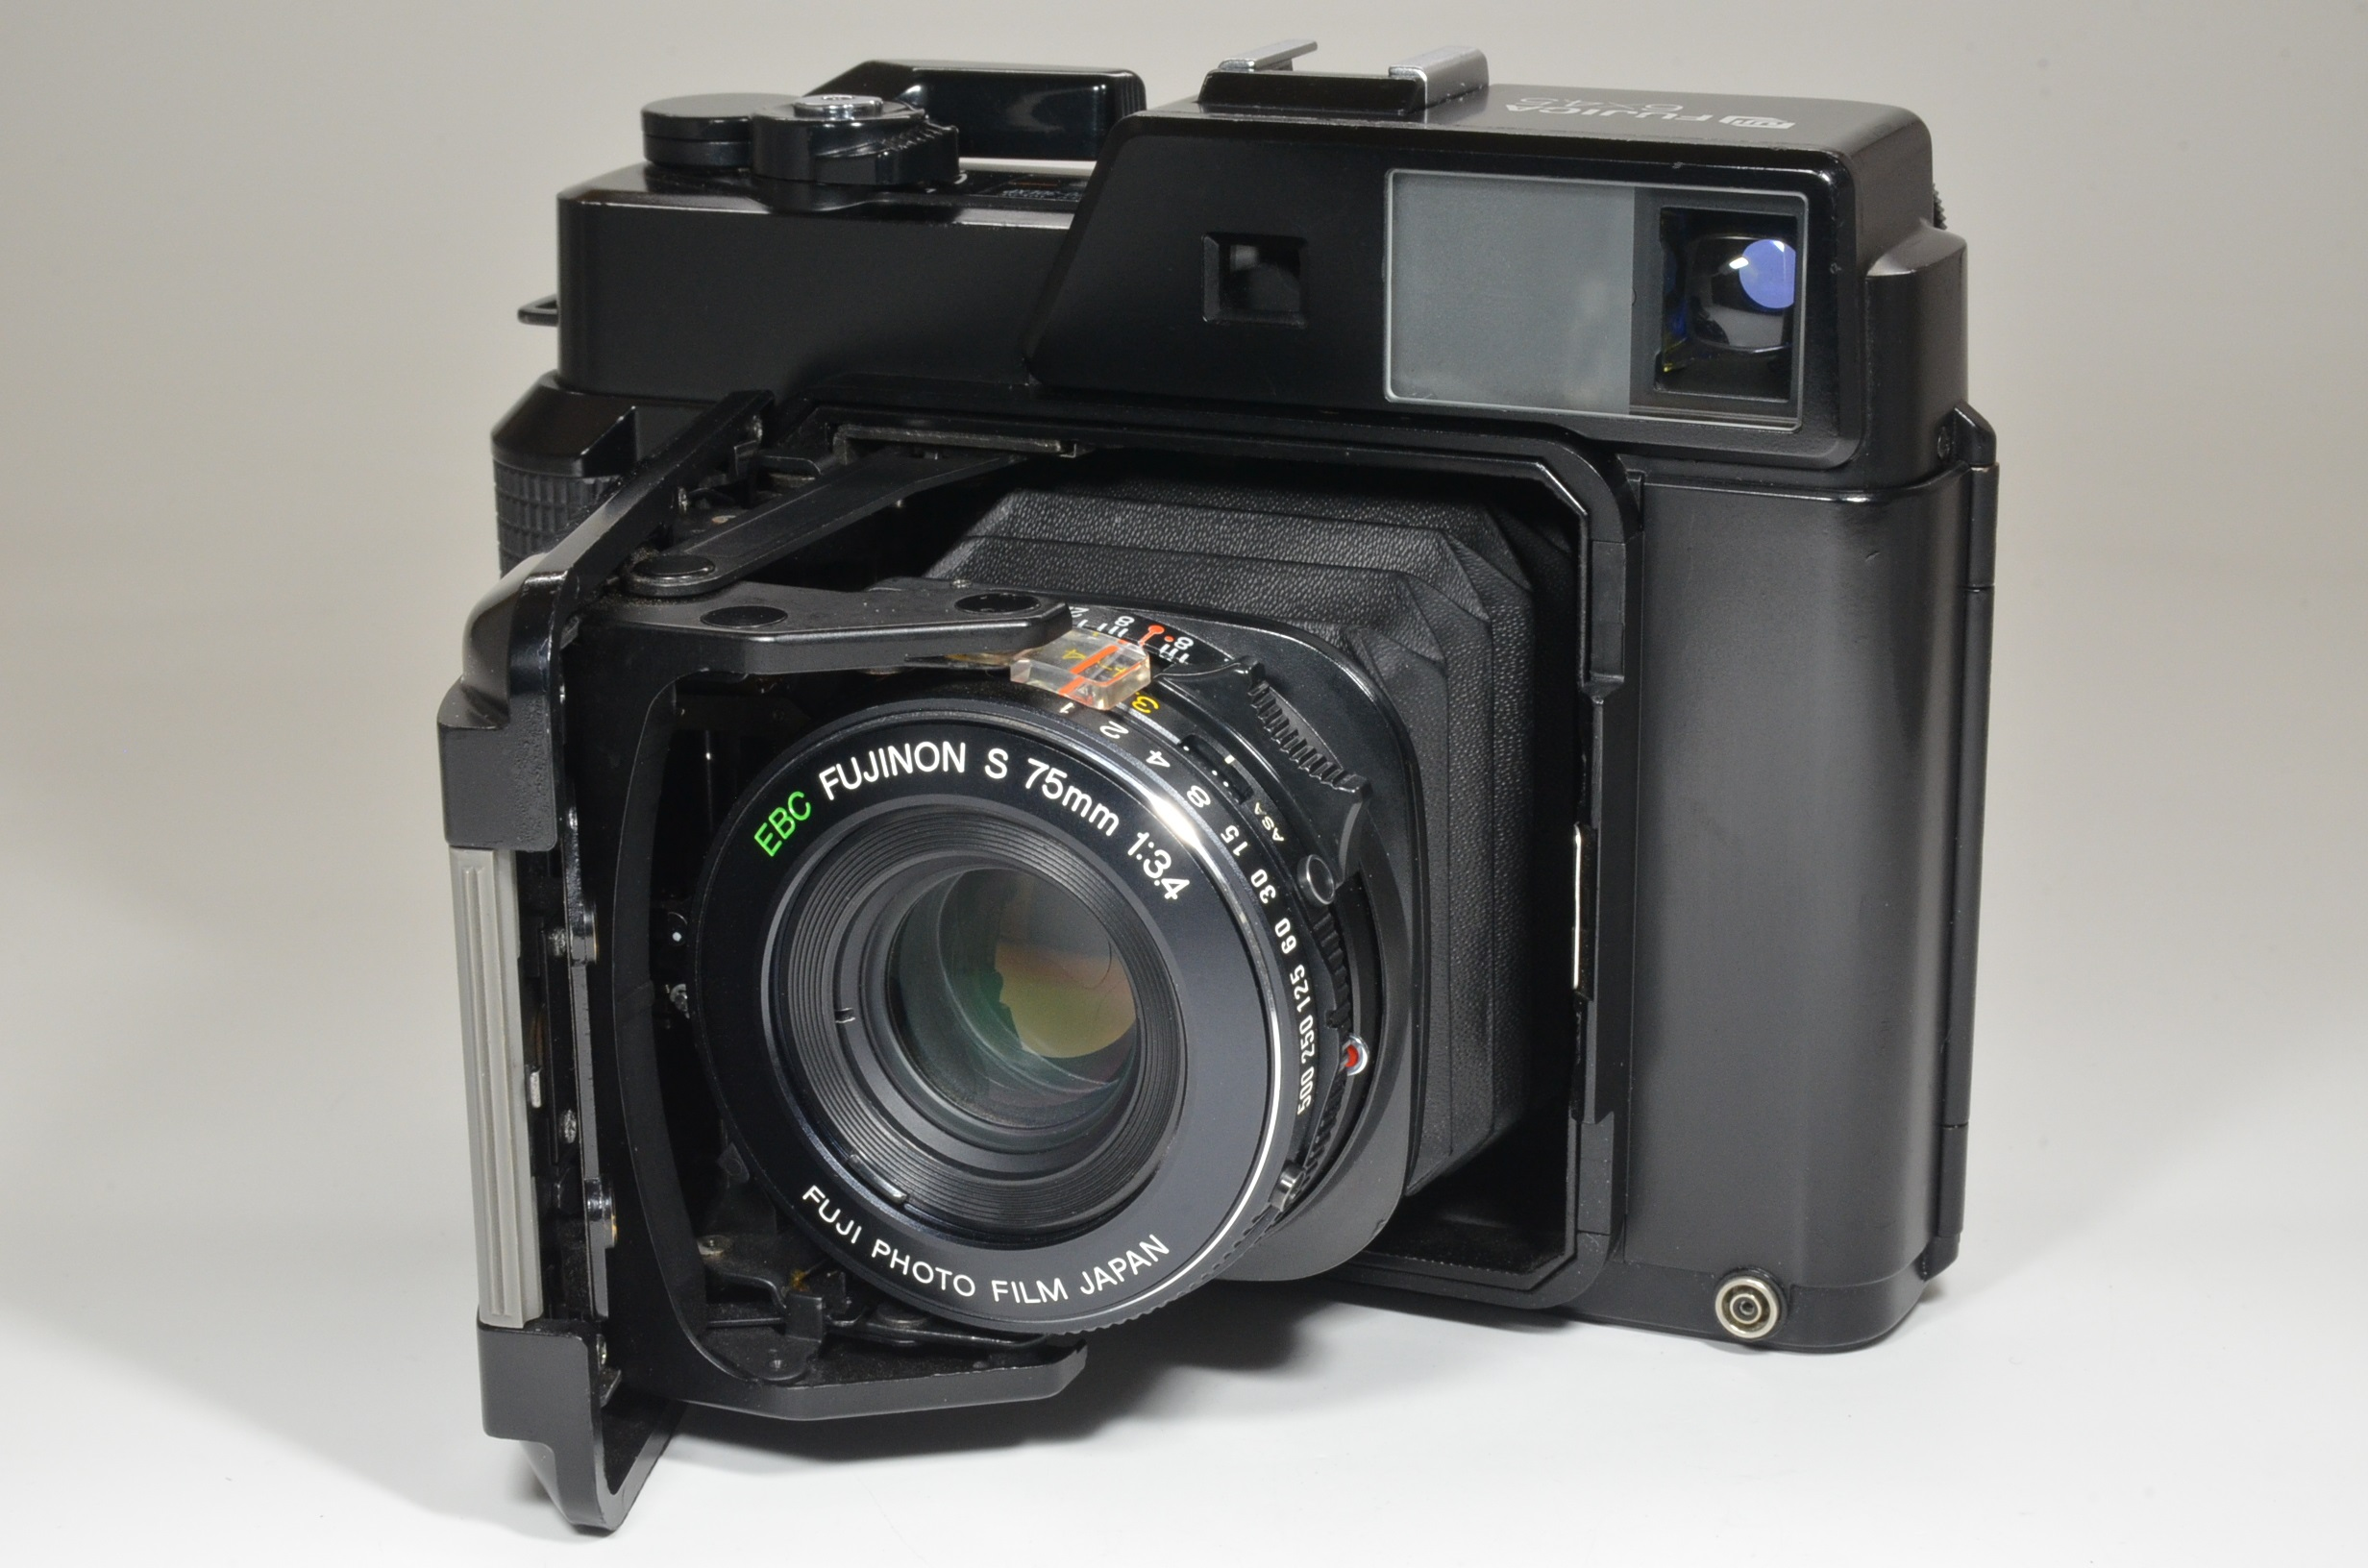 fujifilm fujica gs645 film camera 75mm f3.4